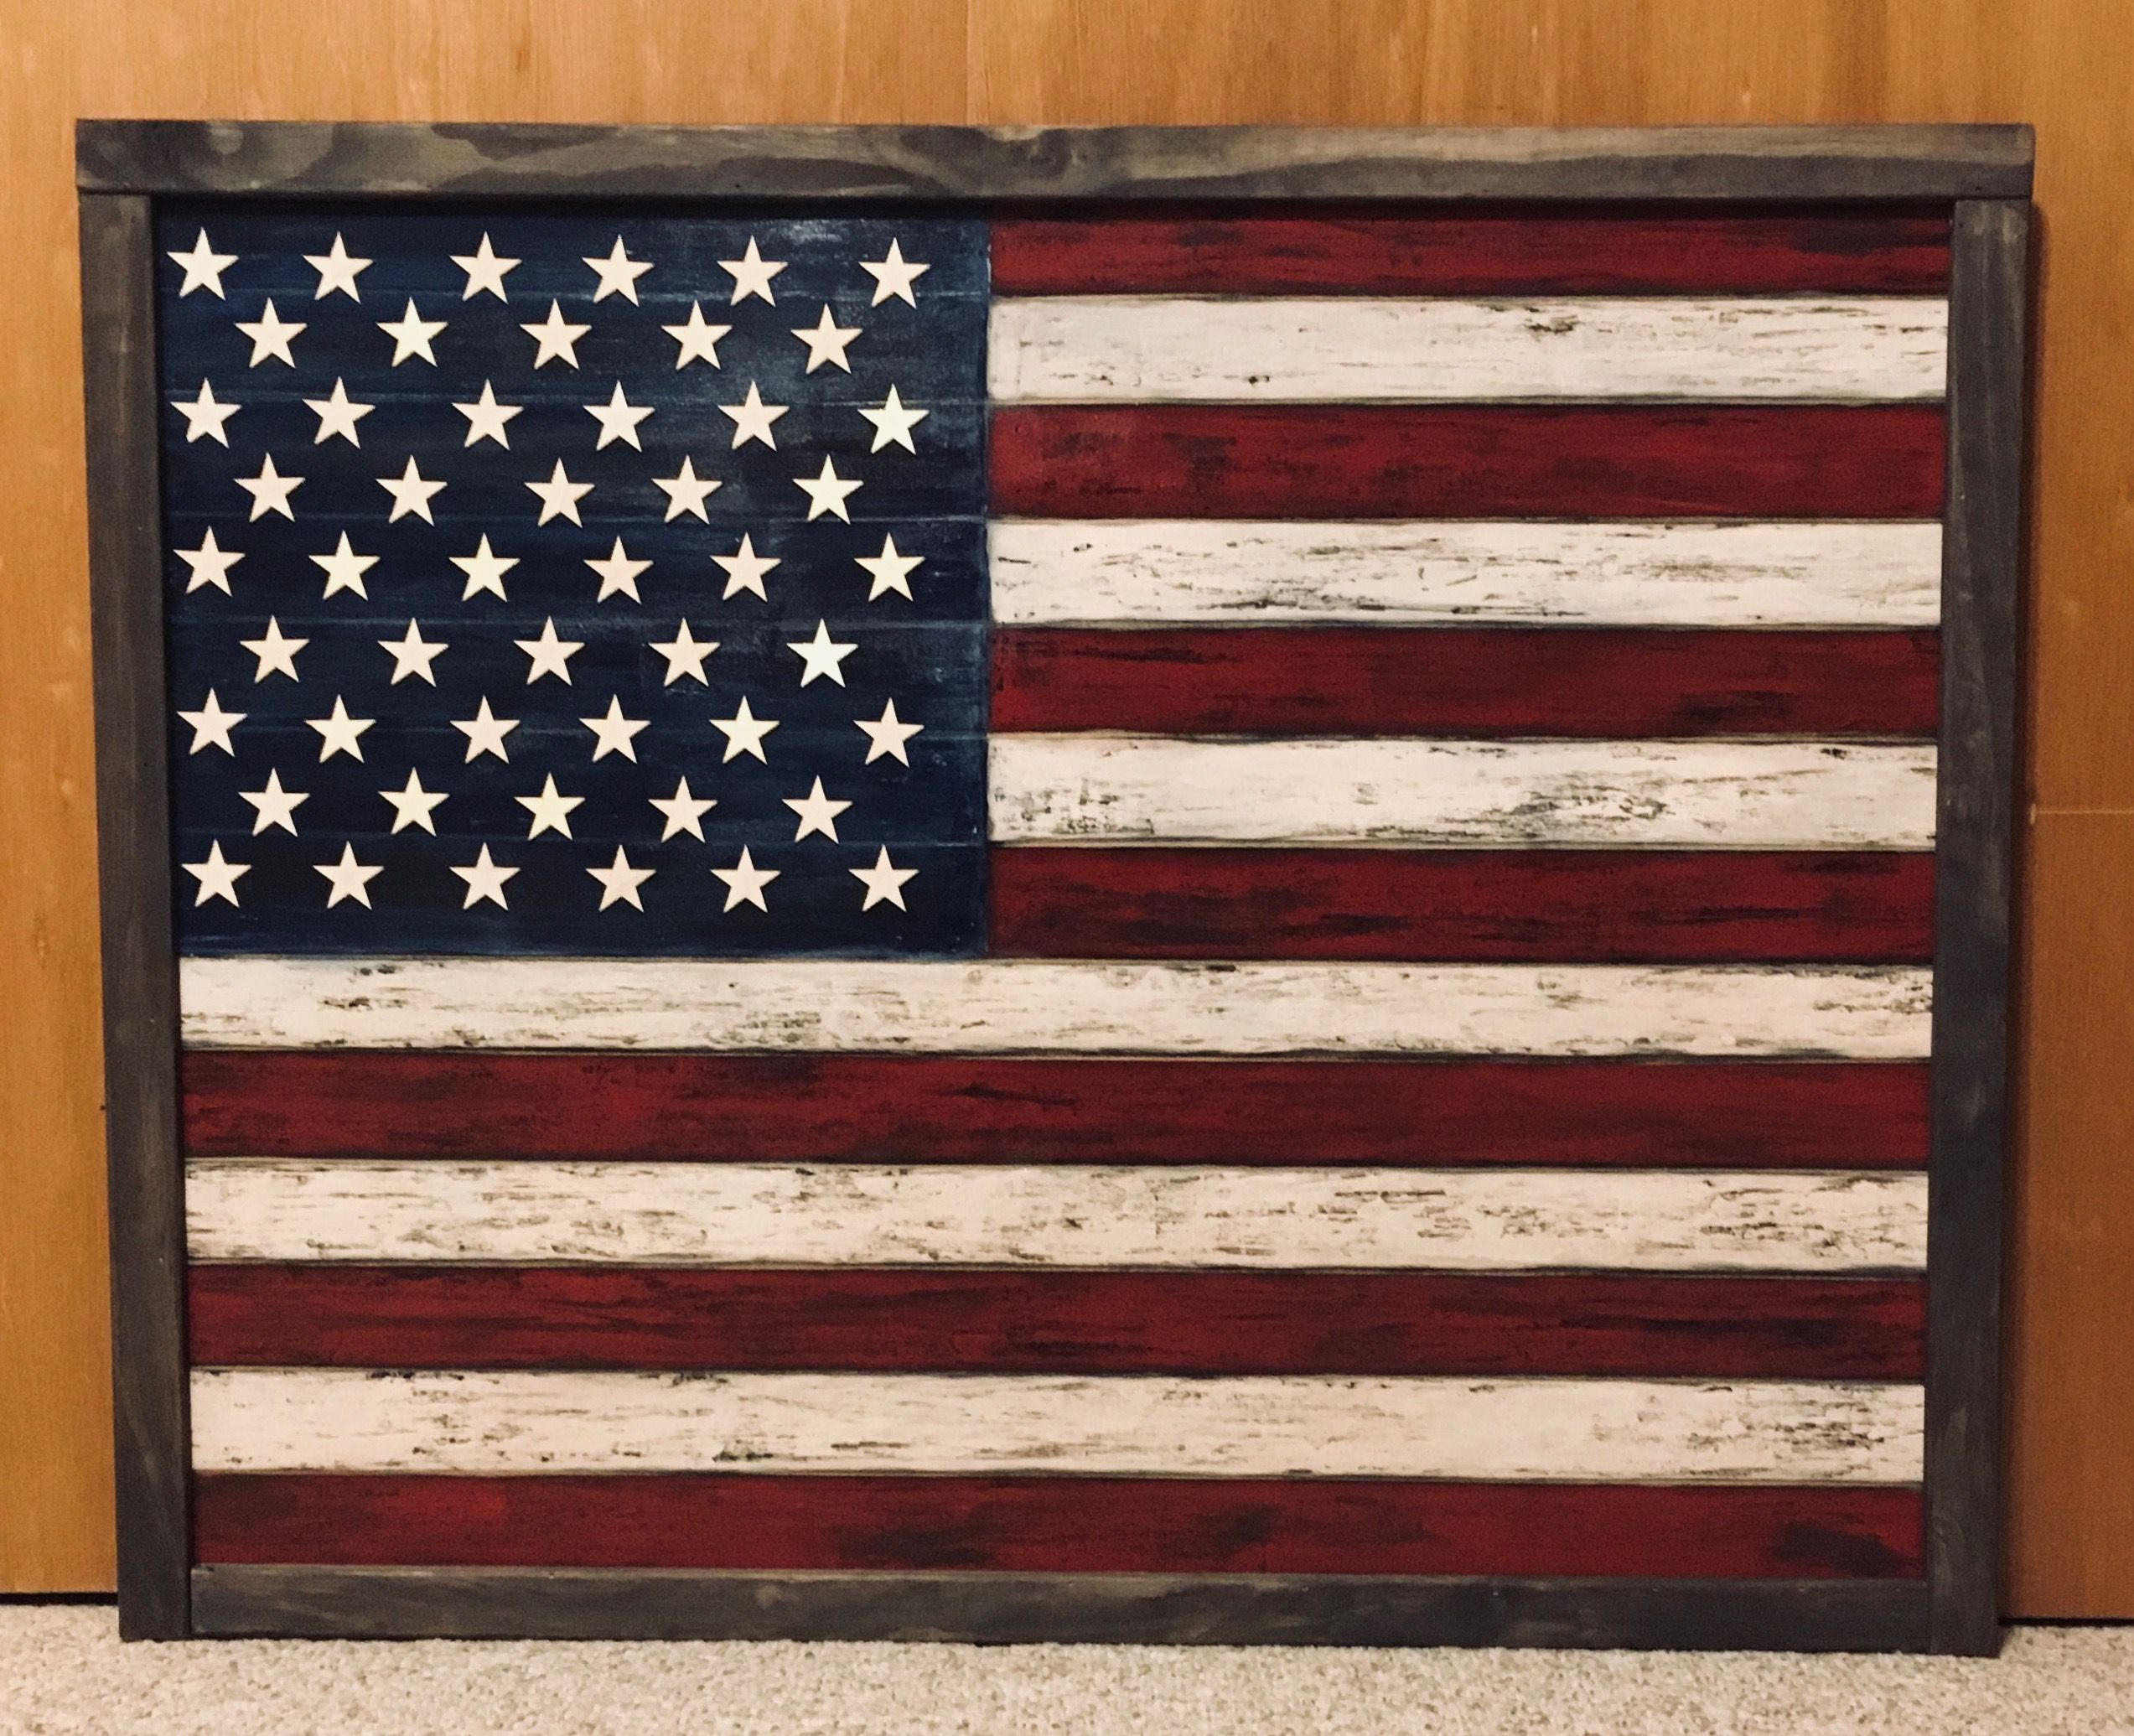 I Painted This American Flag Acrylics On Mdf With Wooden Stars For